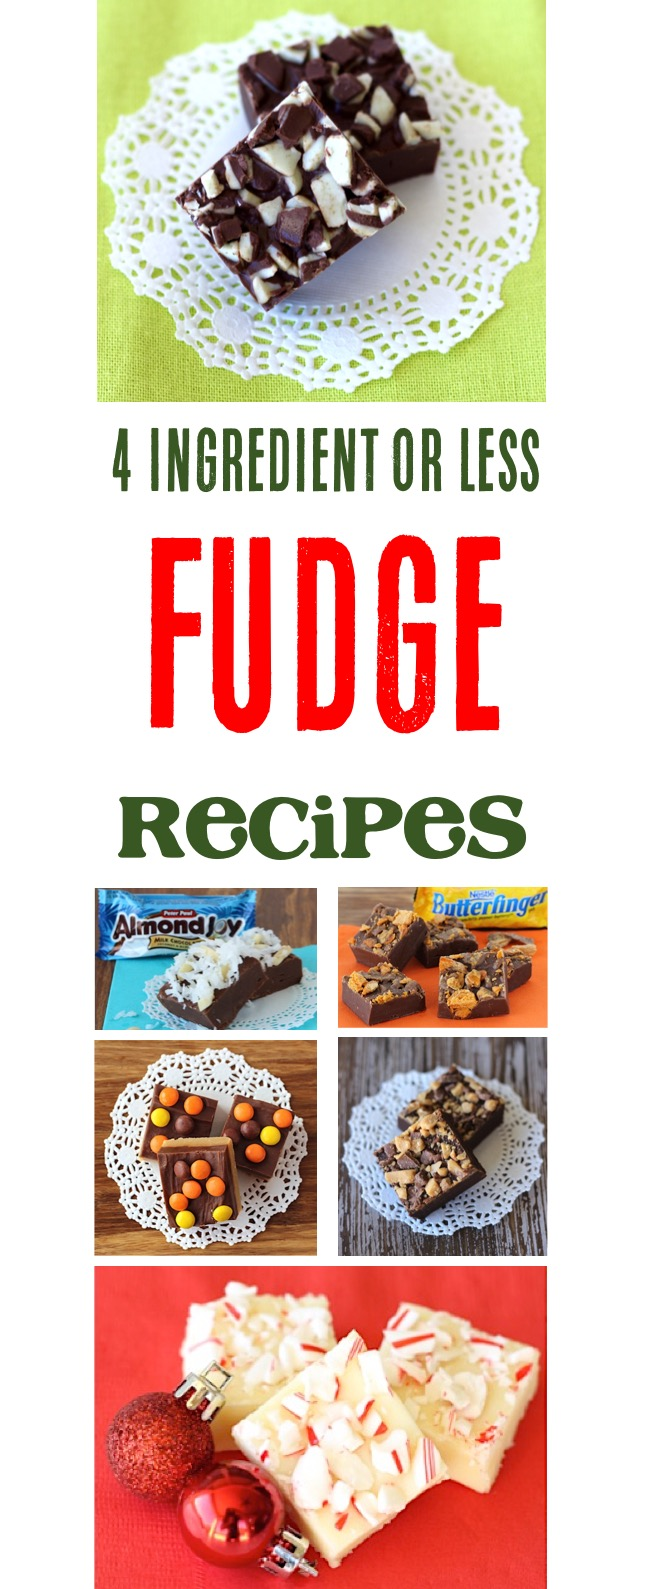 4 Ingredient Fudge Recipes at TheFrugalGirls.com